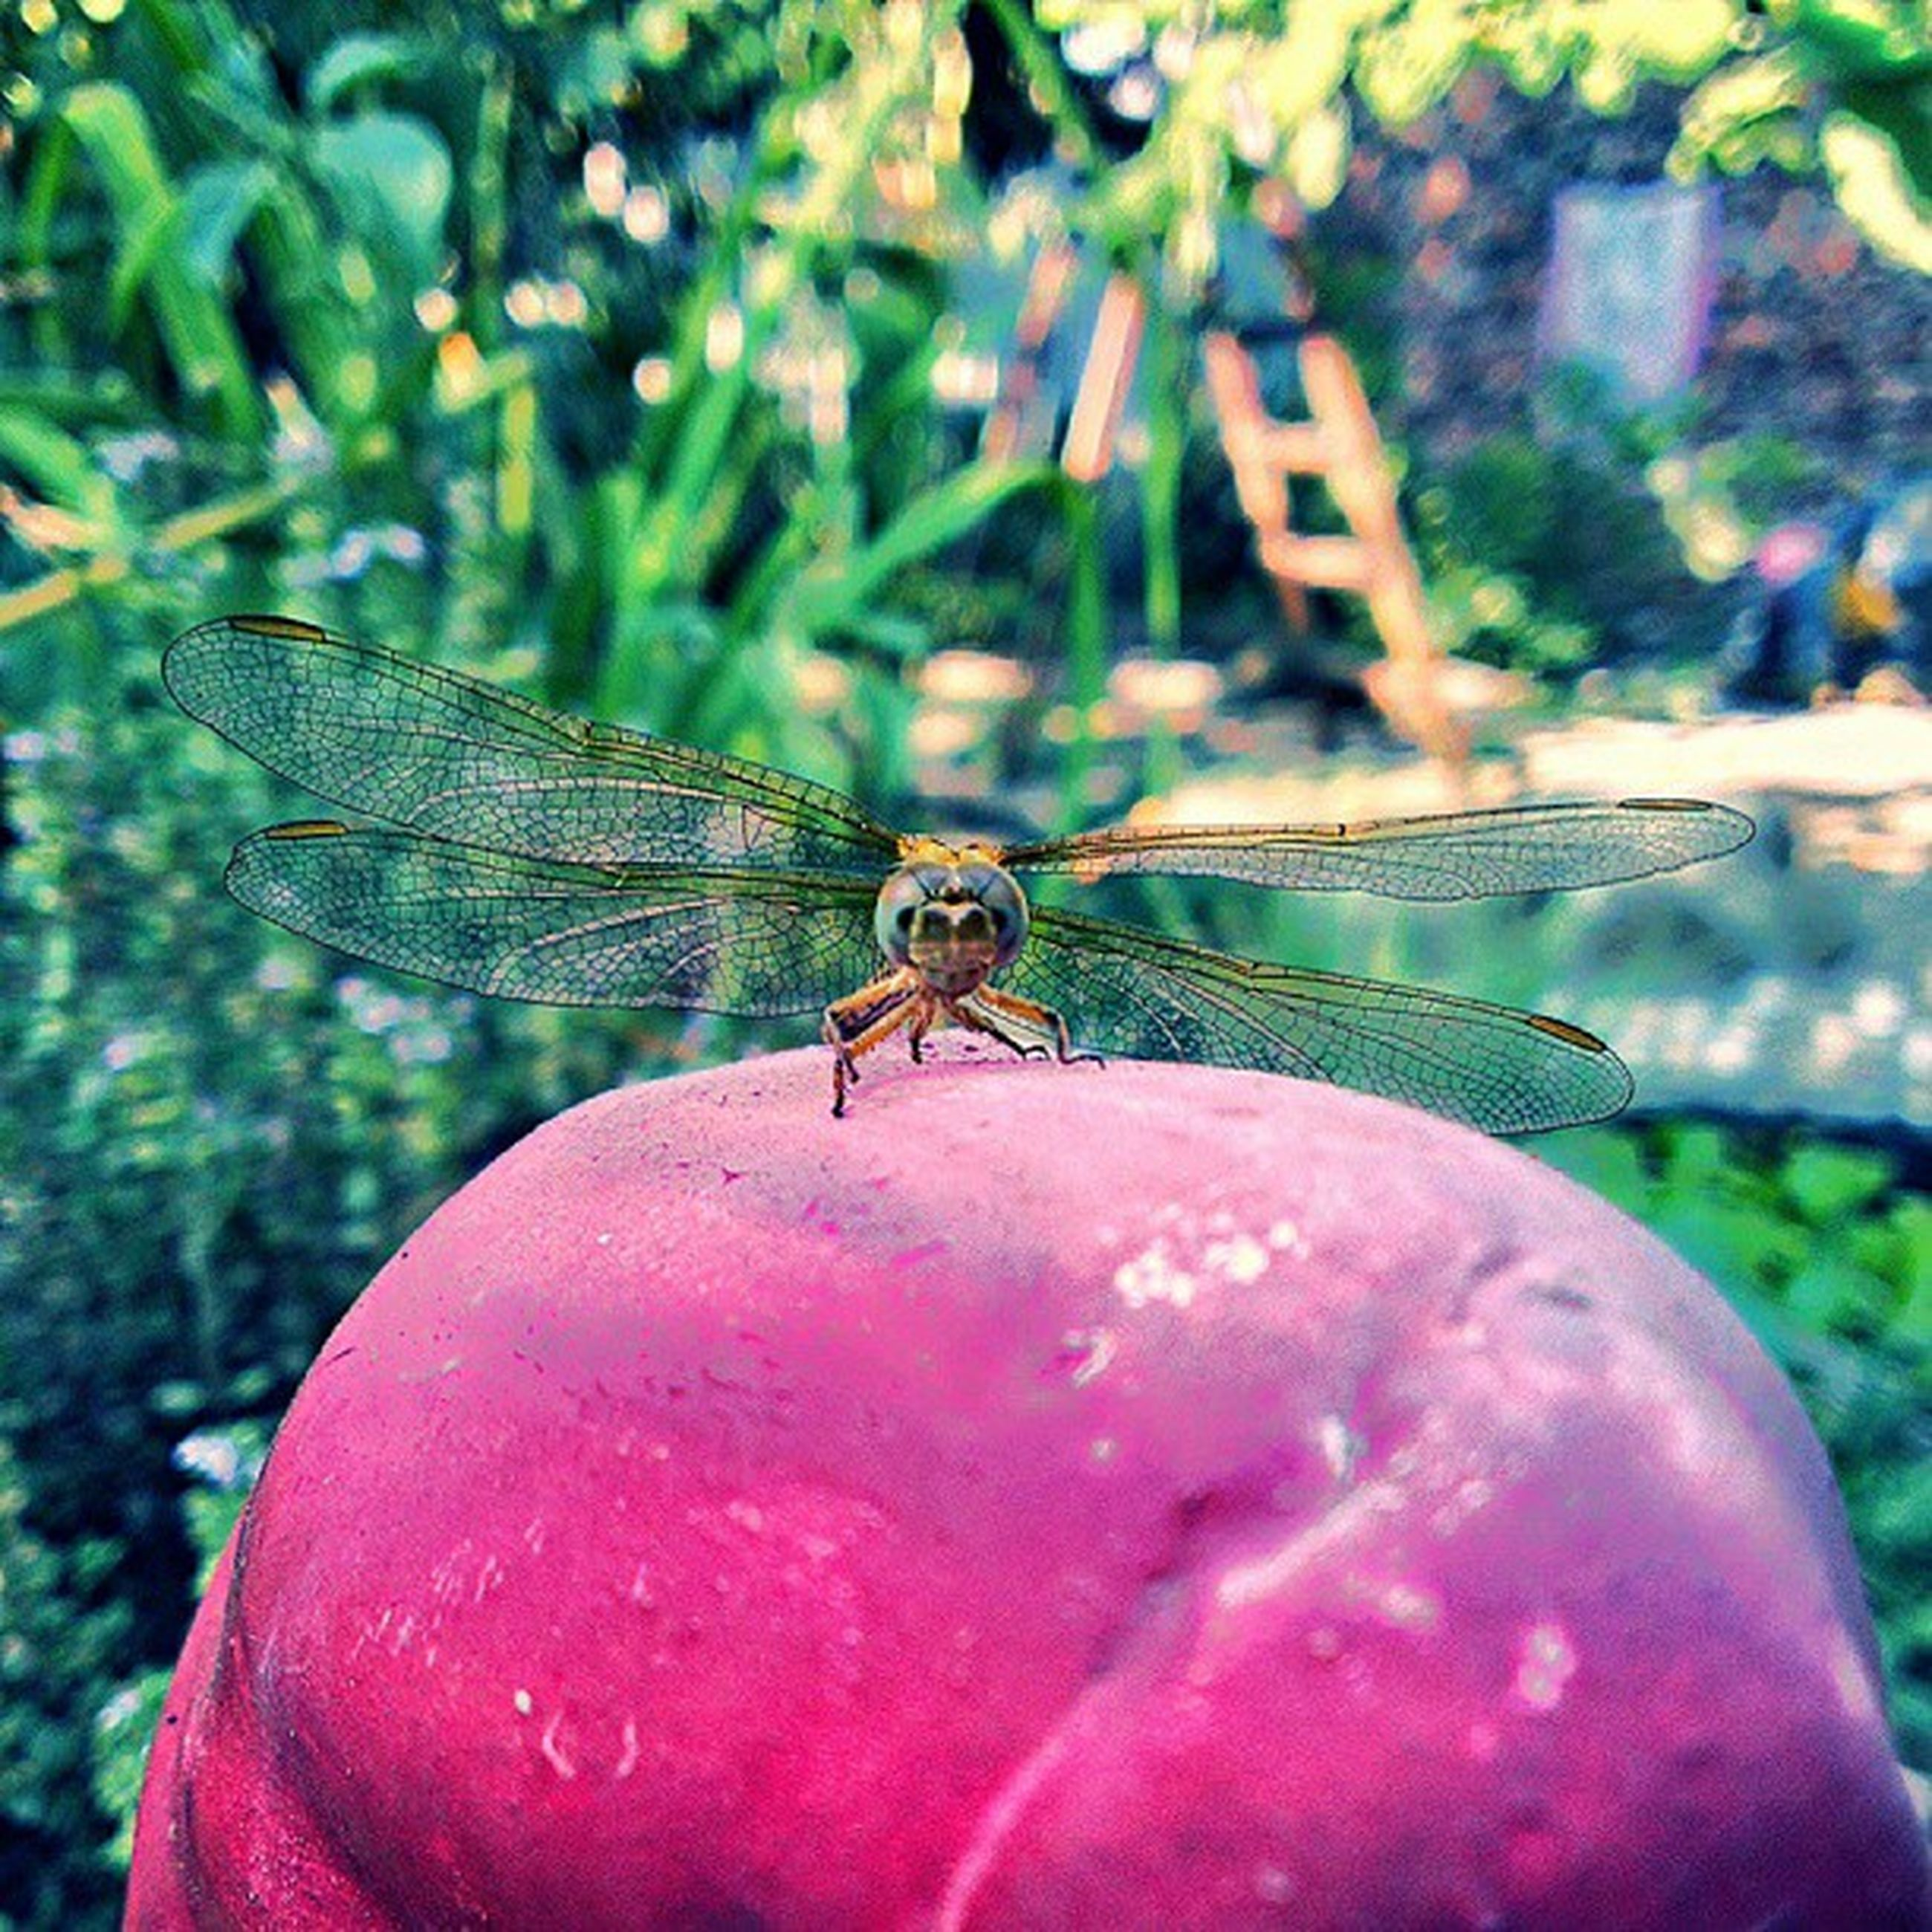 insect, one animal, animals in the wild, animal themes, wildlife, focus on foreground, close-up, animal antenna, nature, day, outdoors, animal wing, dragonfly, no people, animal wildlife, red, selective focus, full length, zoology, beauty in nature